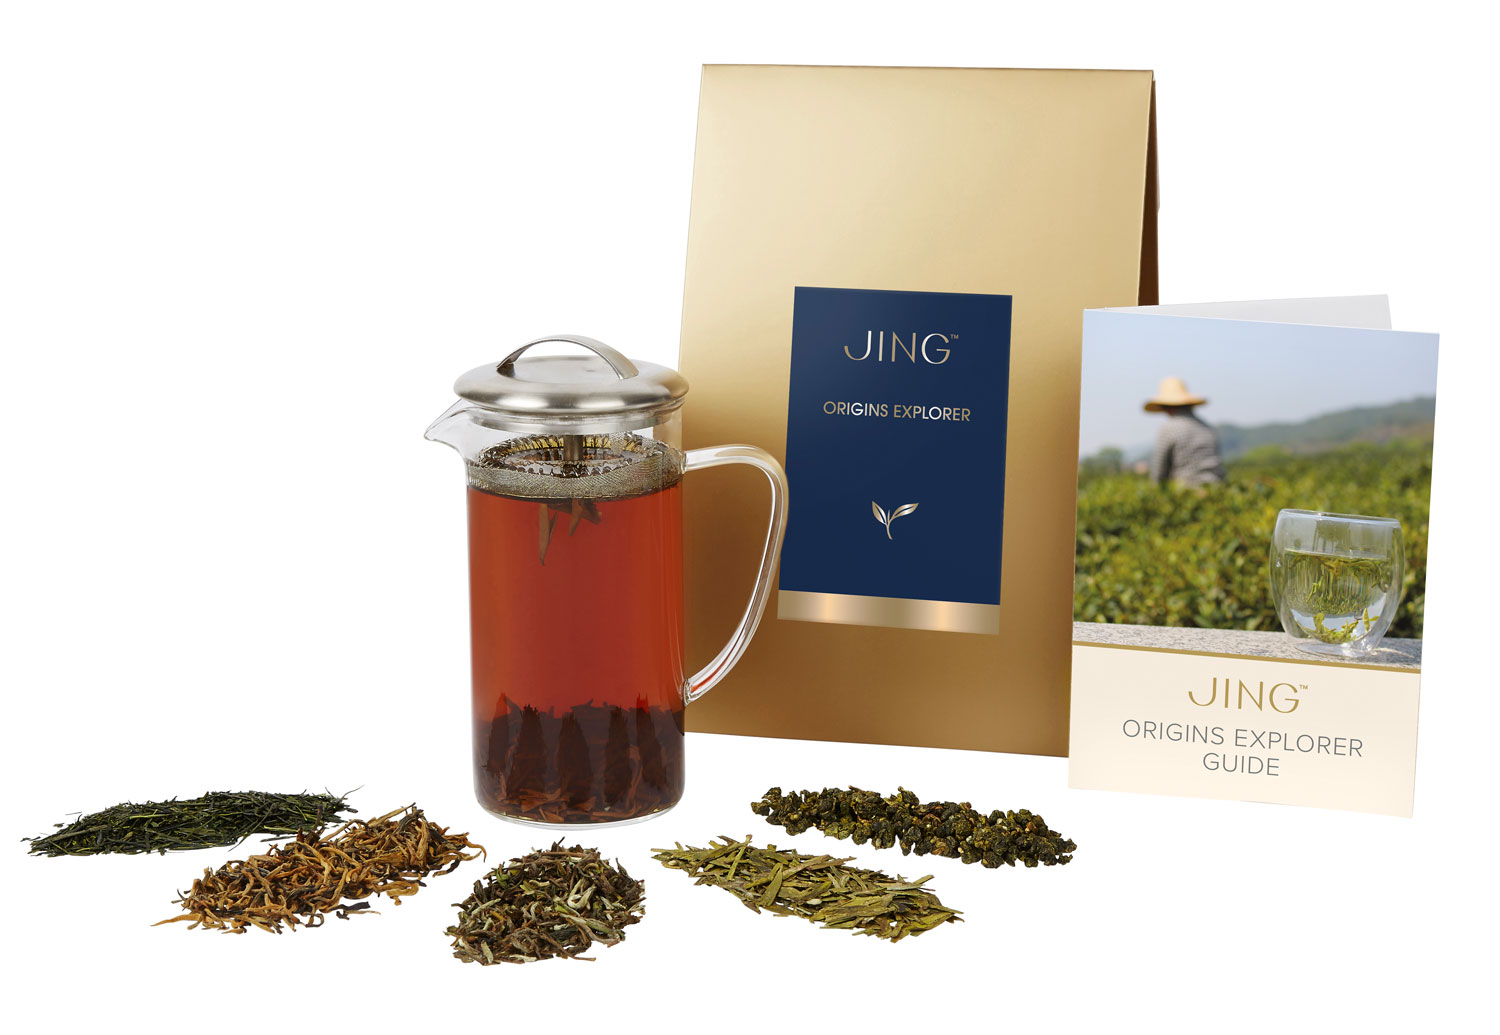 JING Tea Origins Explorer